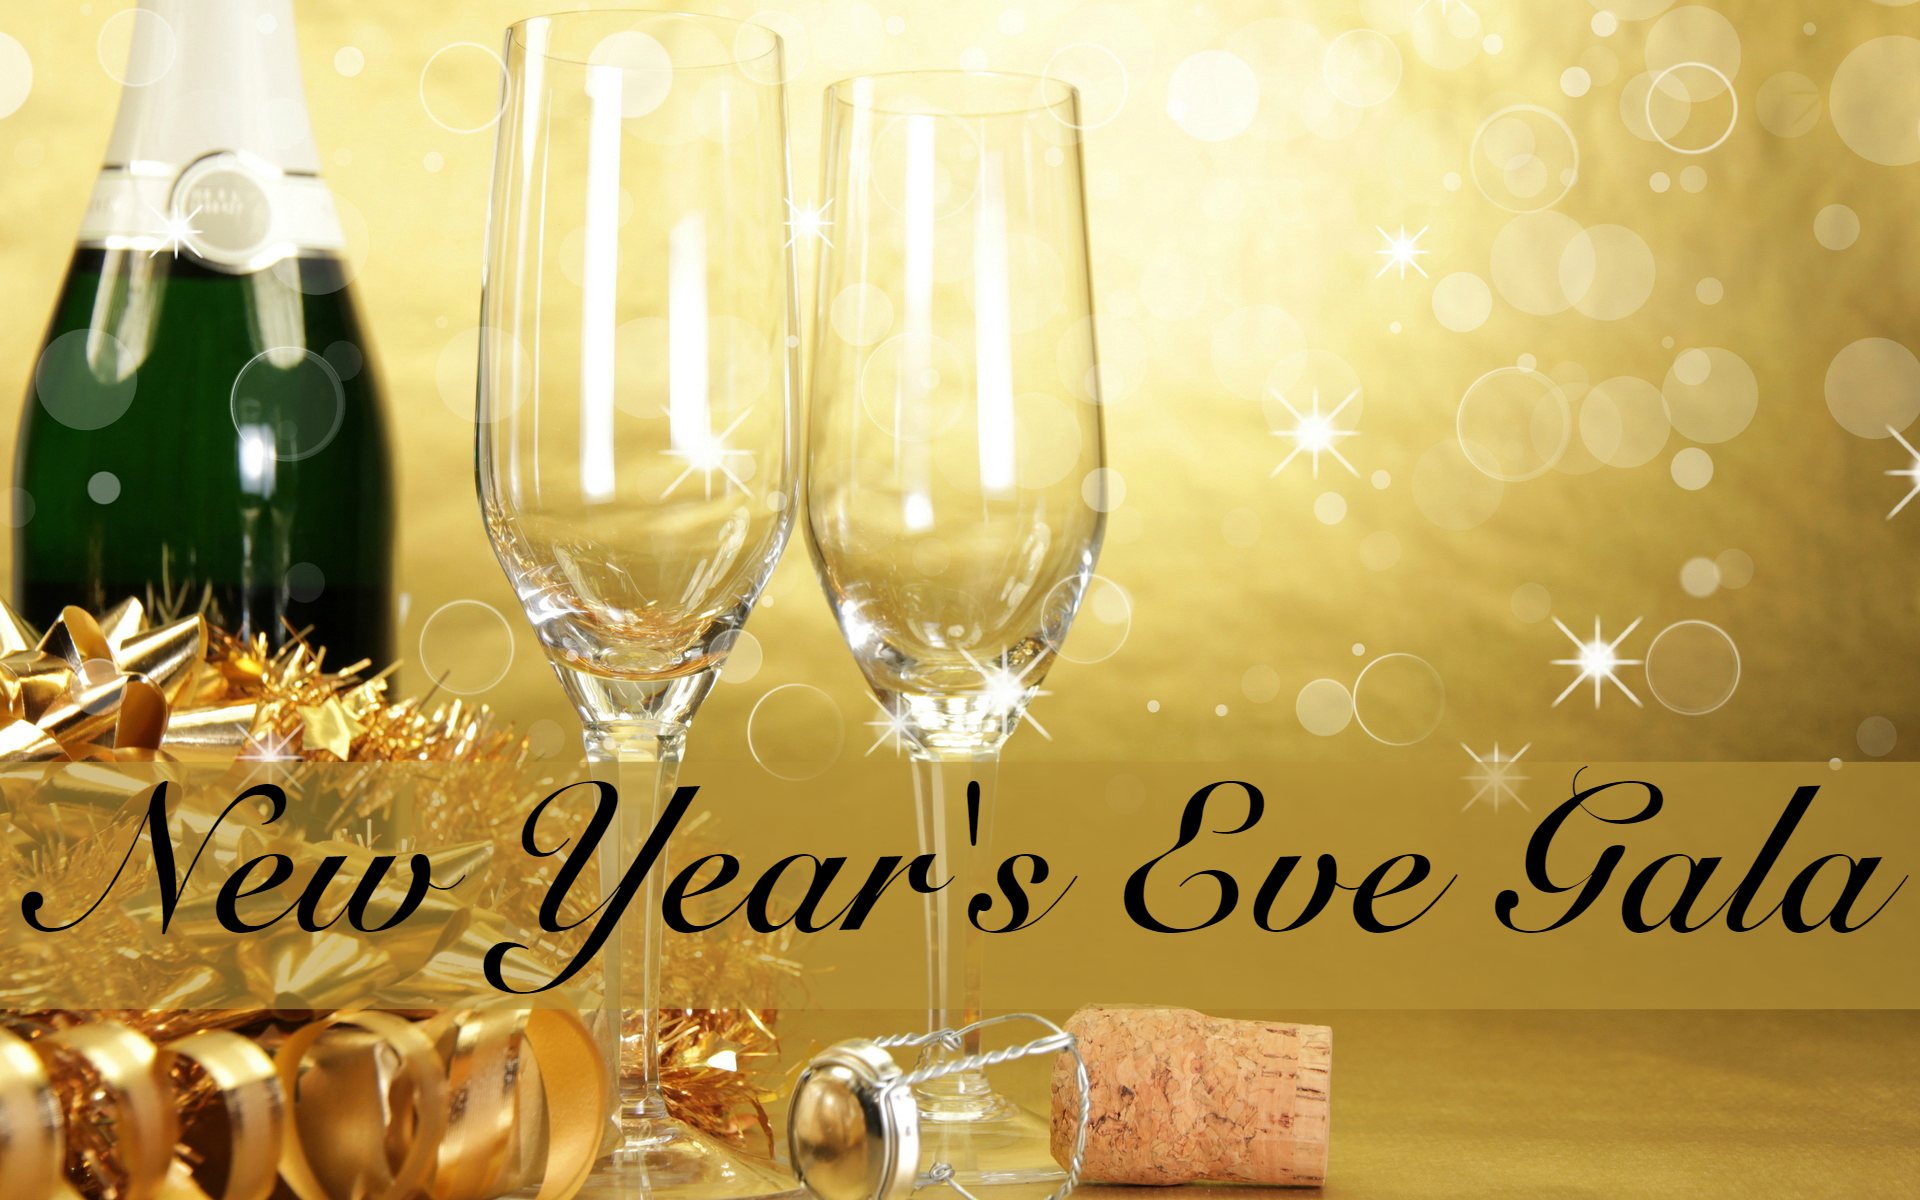 New Year's Eve, Gala, Rhodes on the Pawtuxet